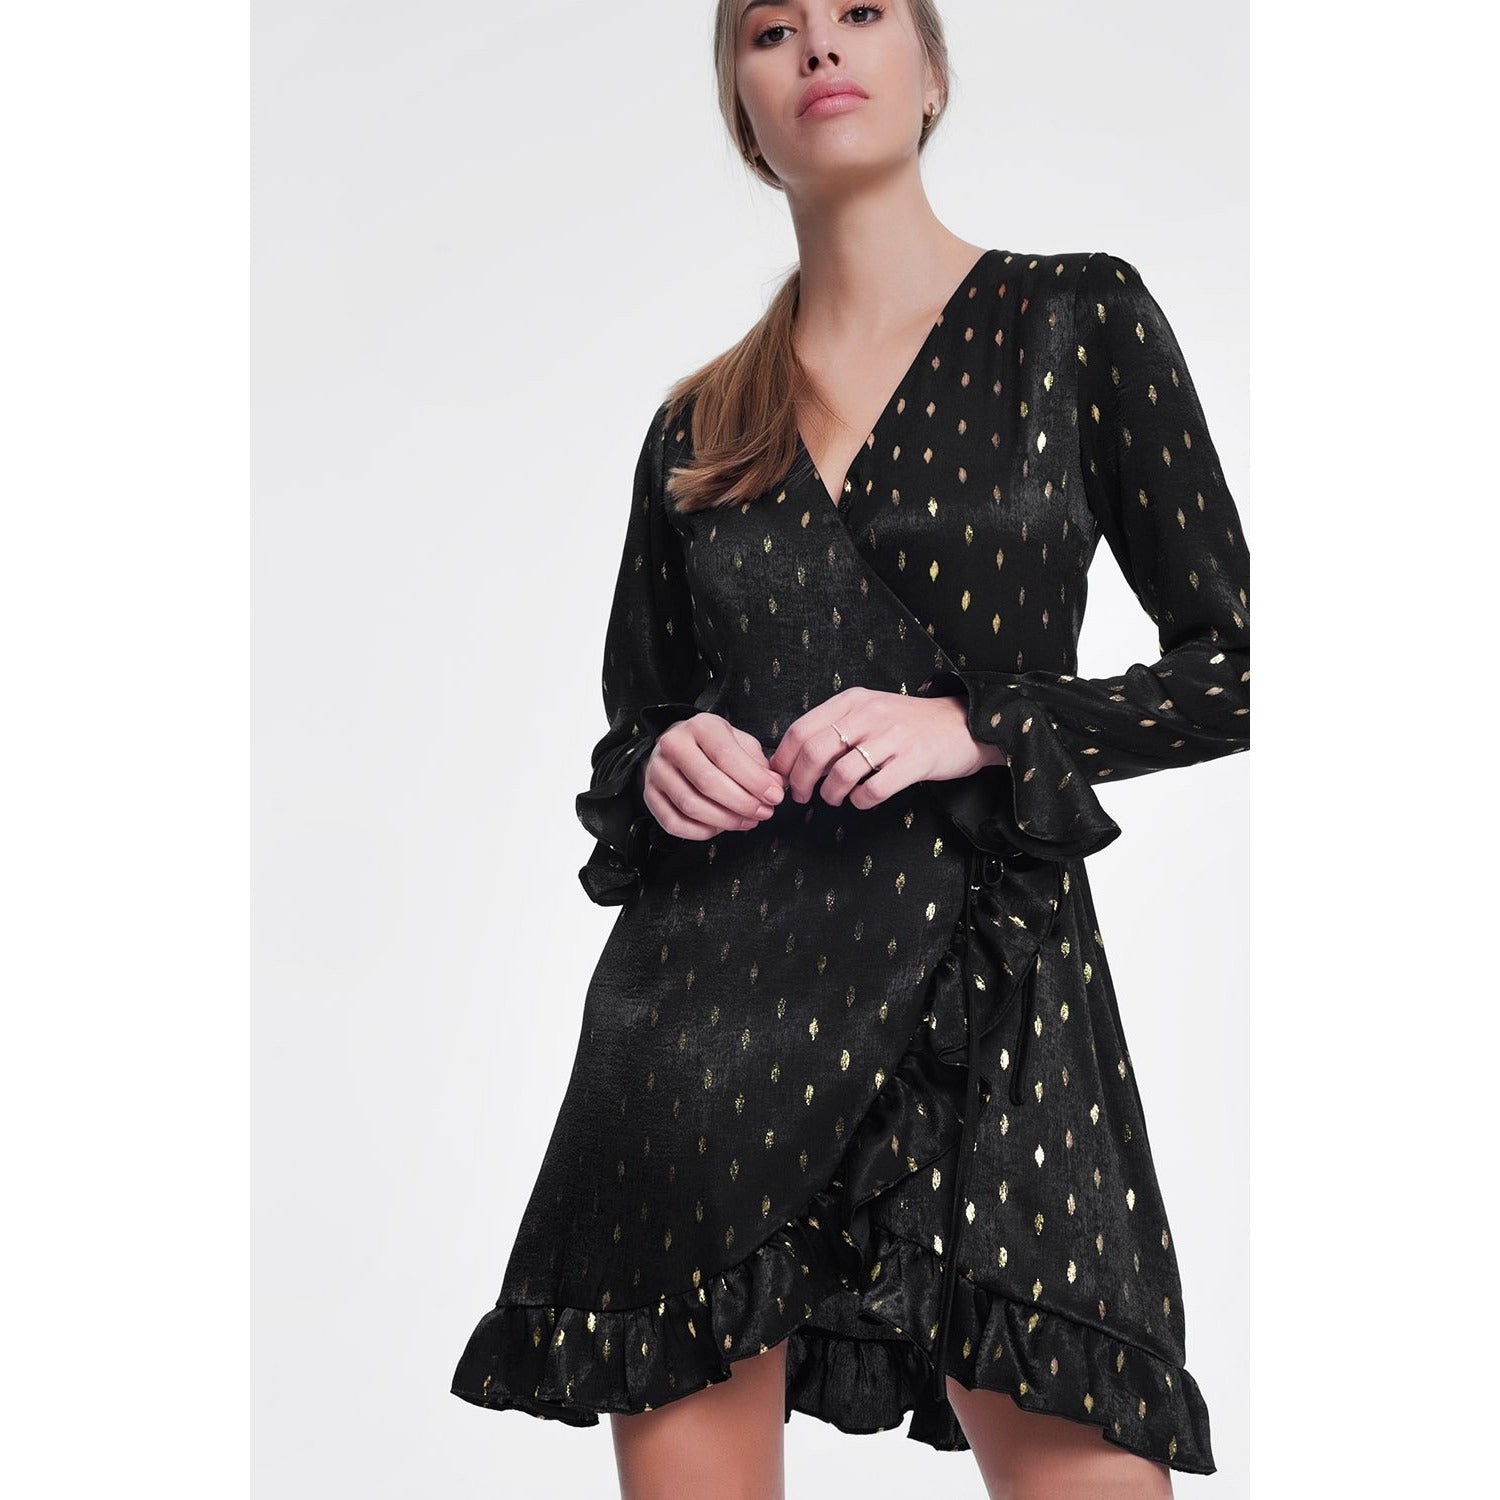 Black Dress With Gold Shiny Spots